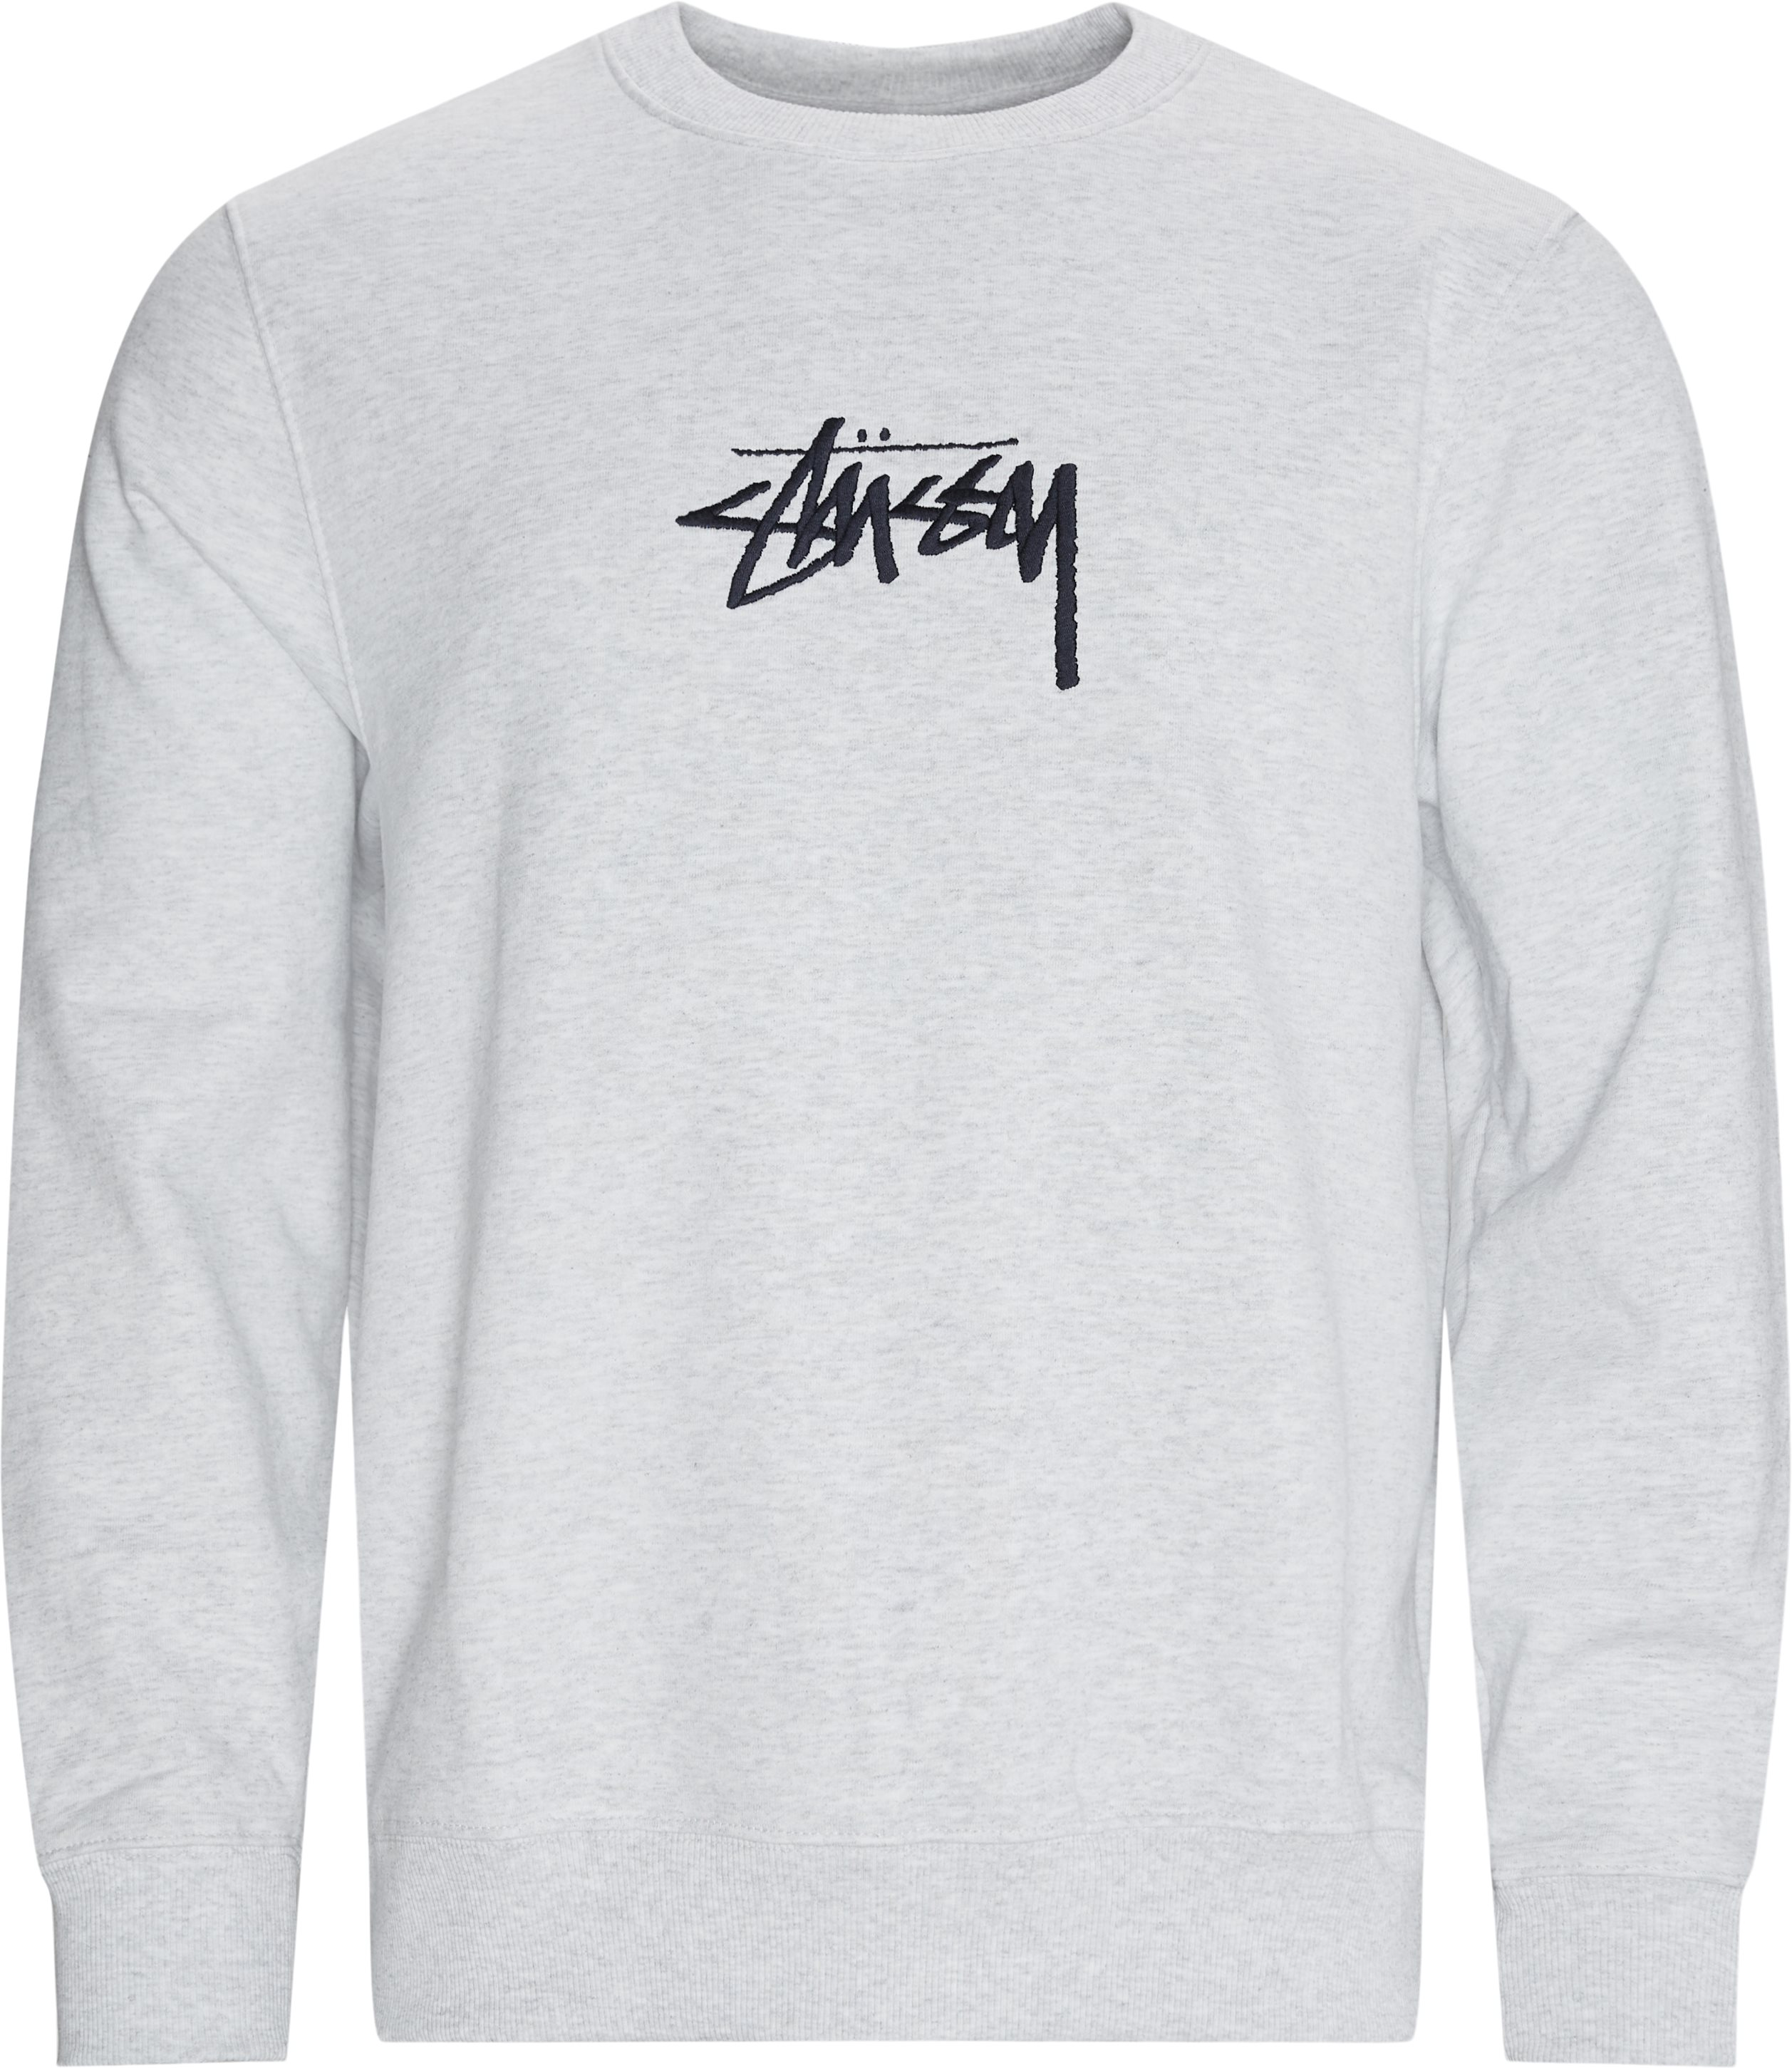 Stock Applique Crewneck Sweatshirt - Sweatshirts - Regular - Grå